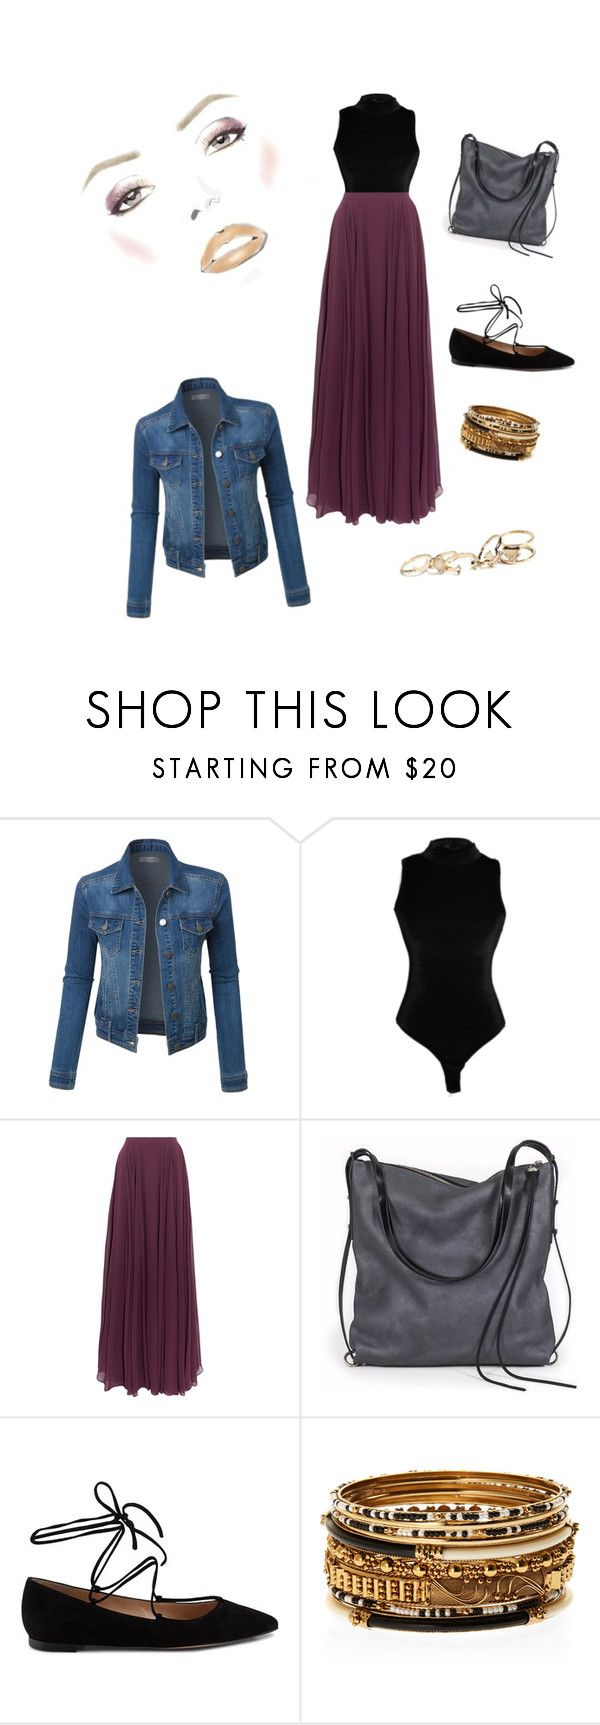 """falda larga"" by yopacaochoa on Polyvore featuring LE3NO, Halston Heritage, Ina Kent, Gianvito Rossi, Amrita Singh and GUESS"